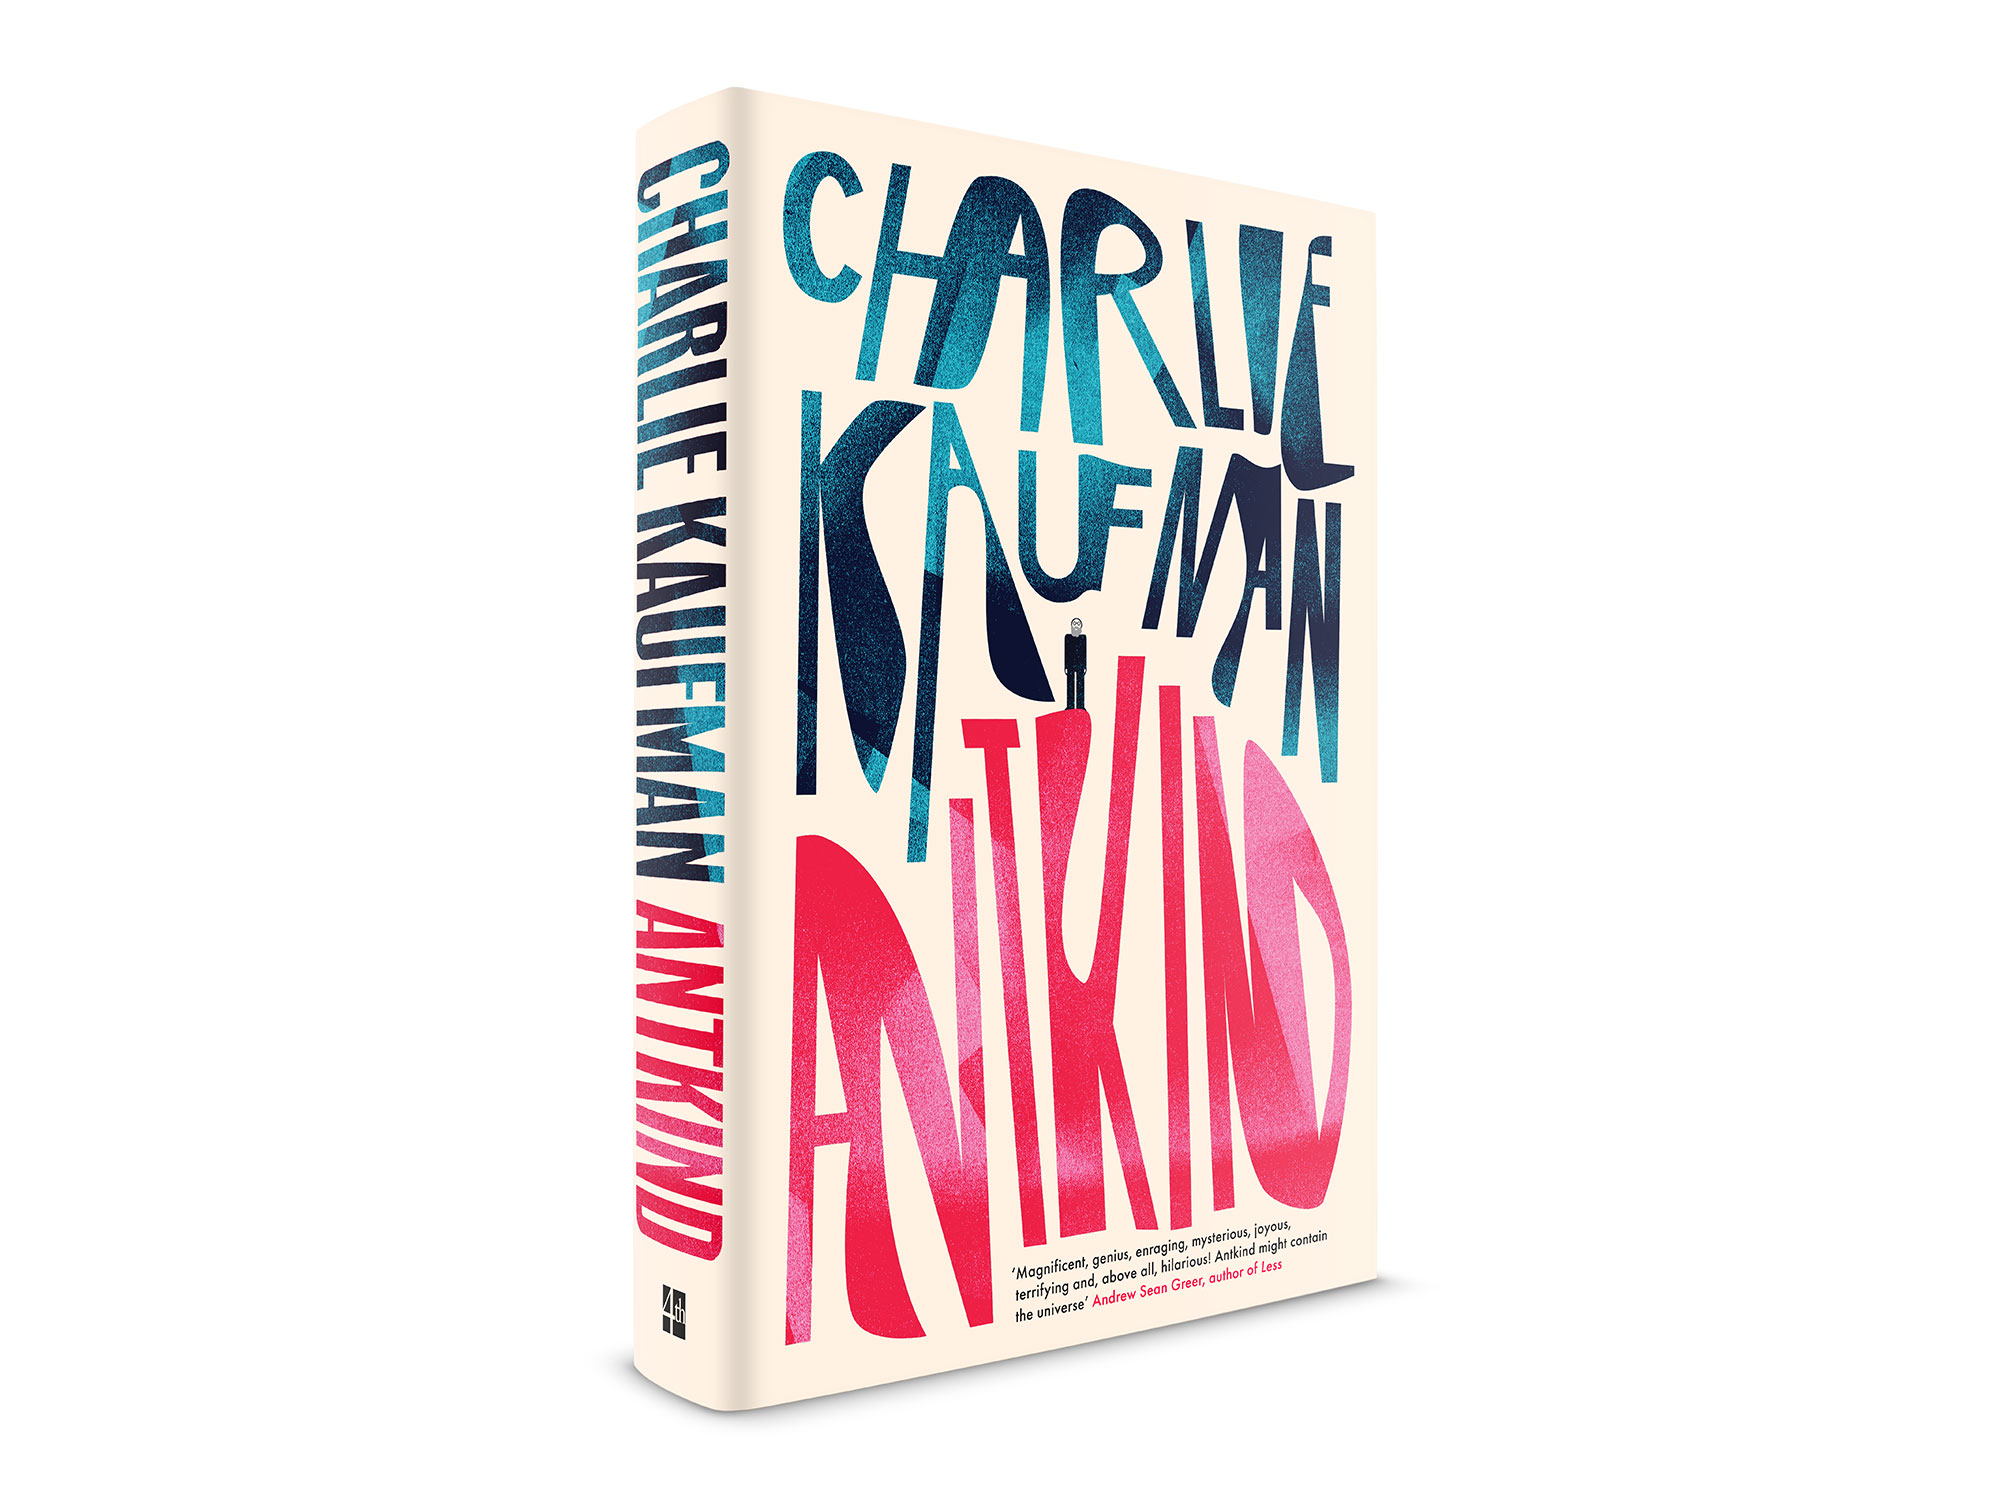 Antkind novel by Charlie Kaufman